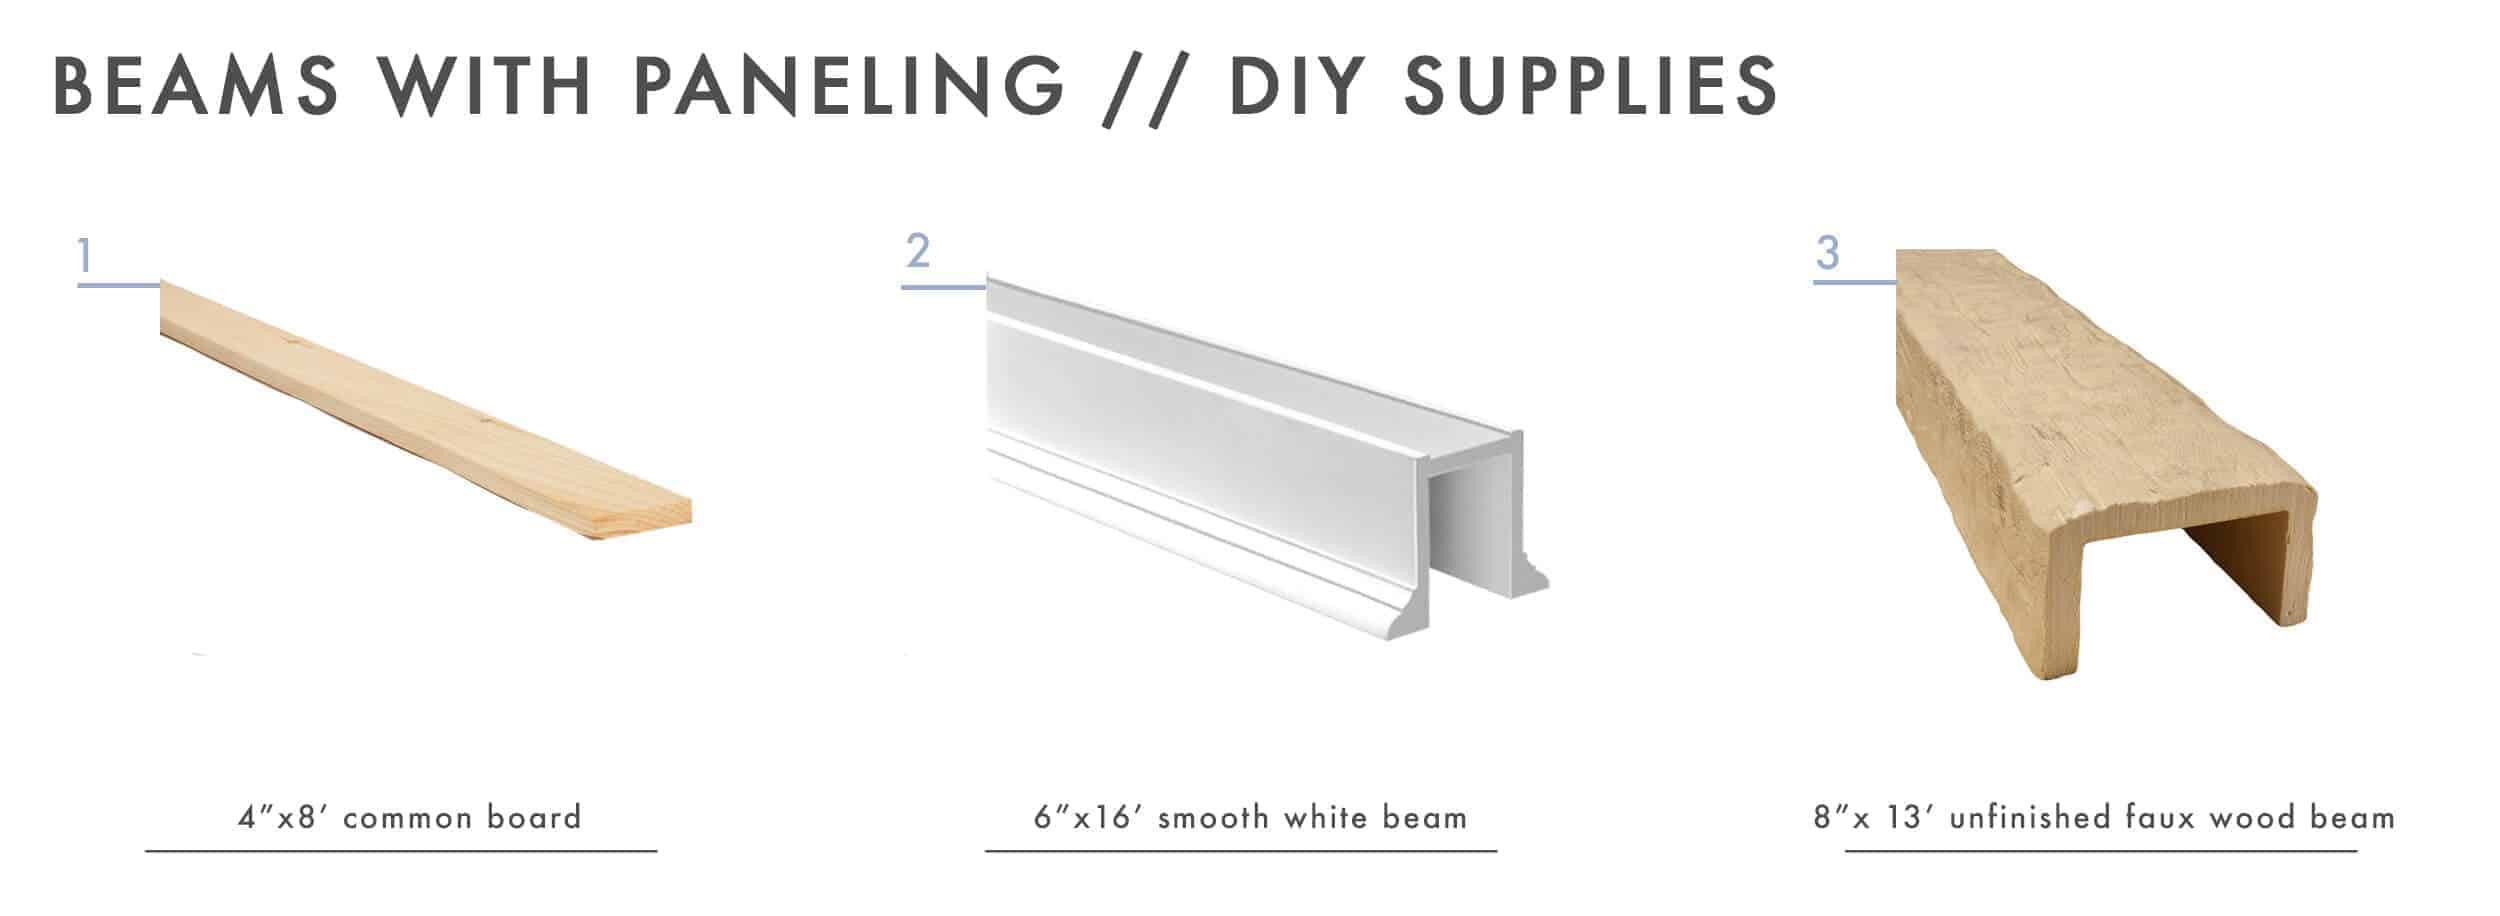 How To Add Character And Charm To Boring Architecture And Houses Ceiling Beams With Paneling Diy Supplies